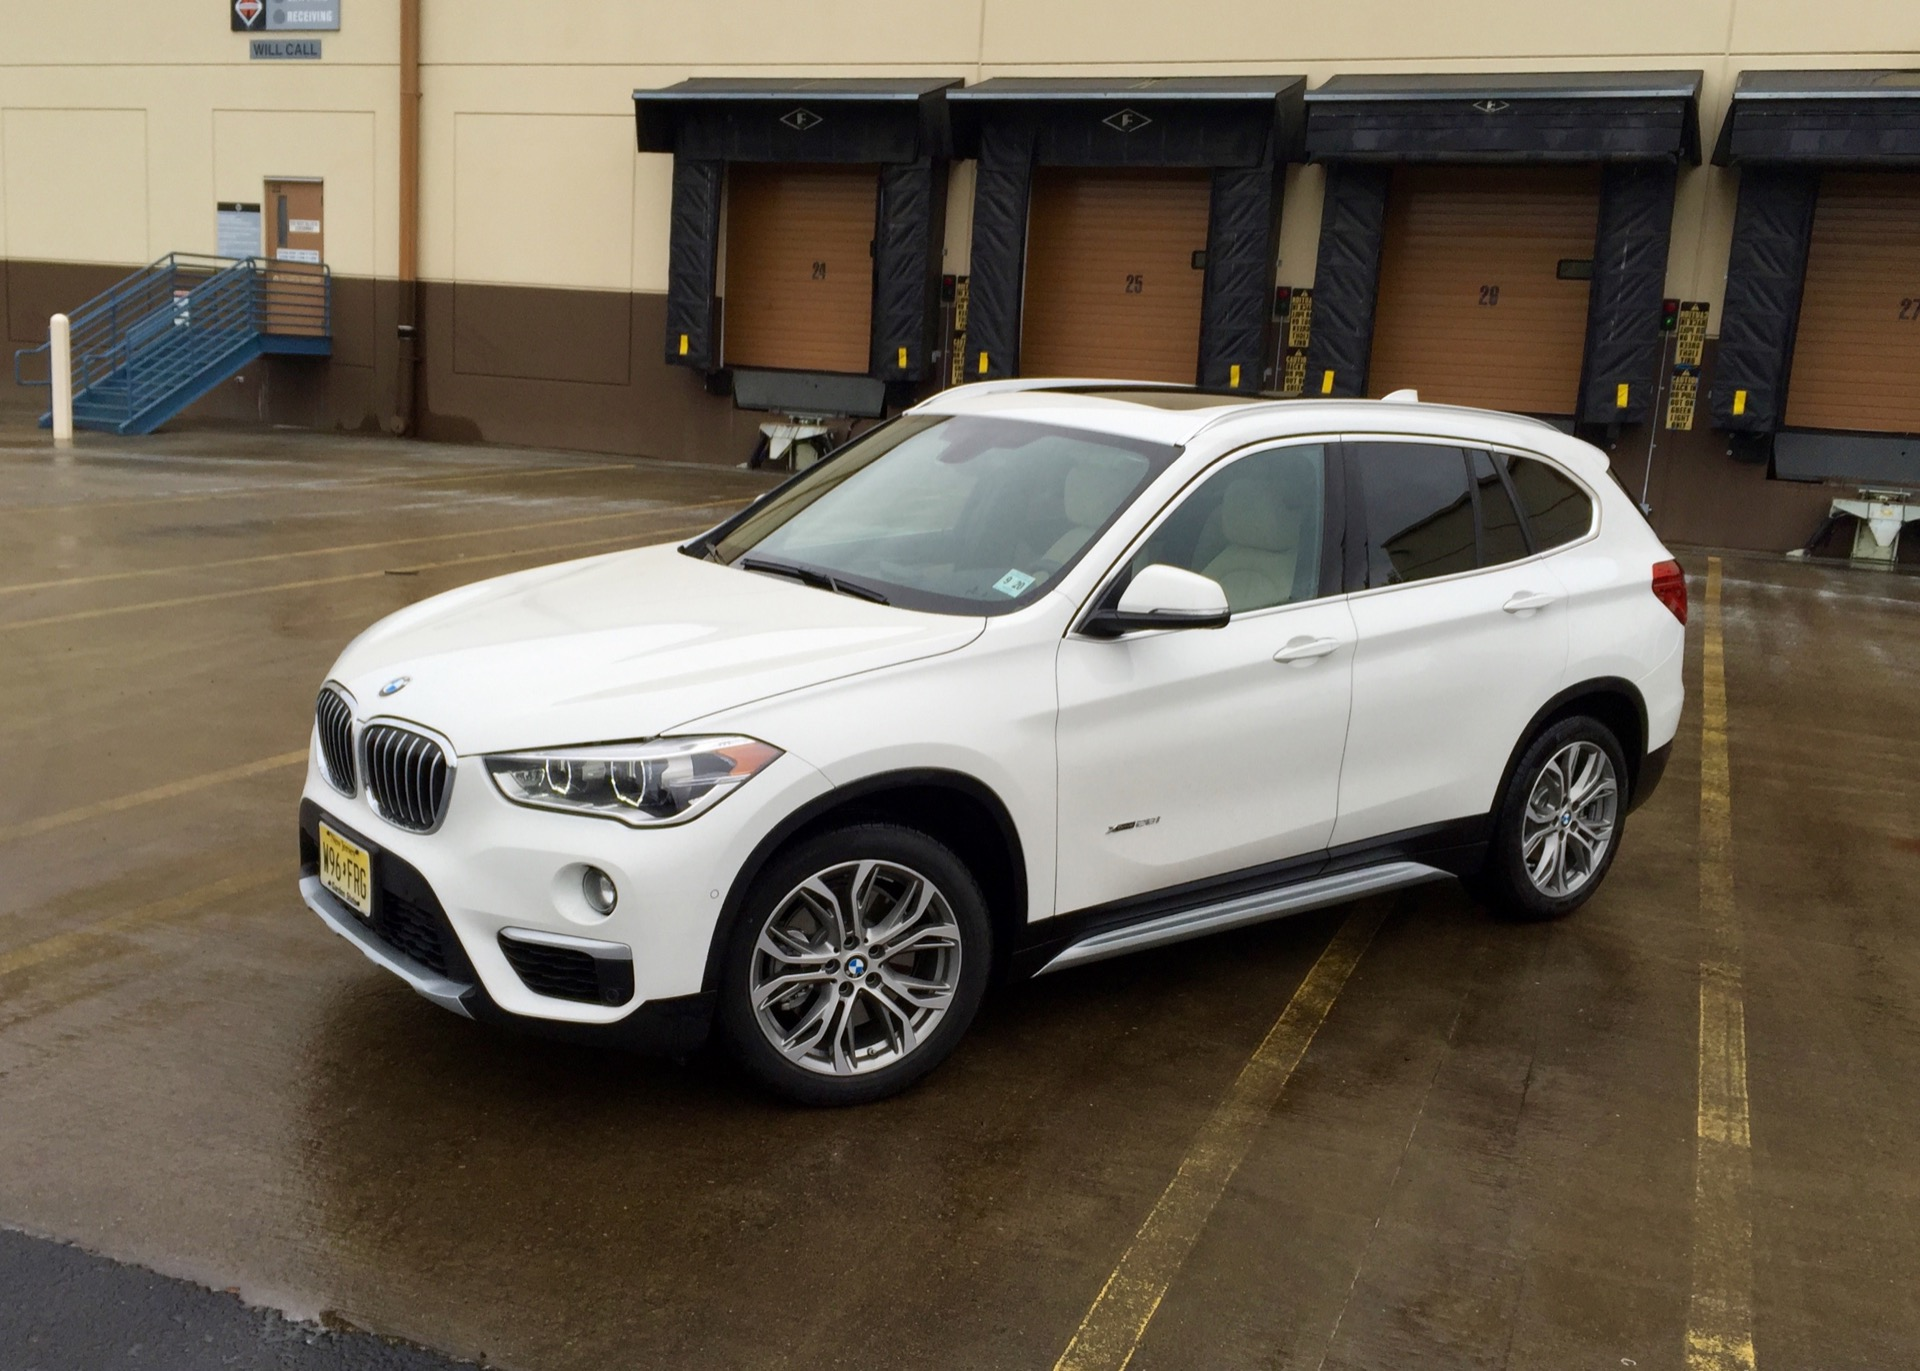 2016 bmw x1_100552546_h 2016 bmw x1 first drive review  at couponss.co